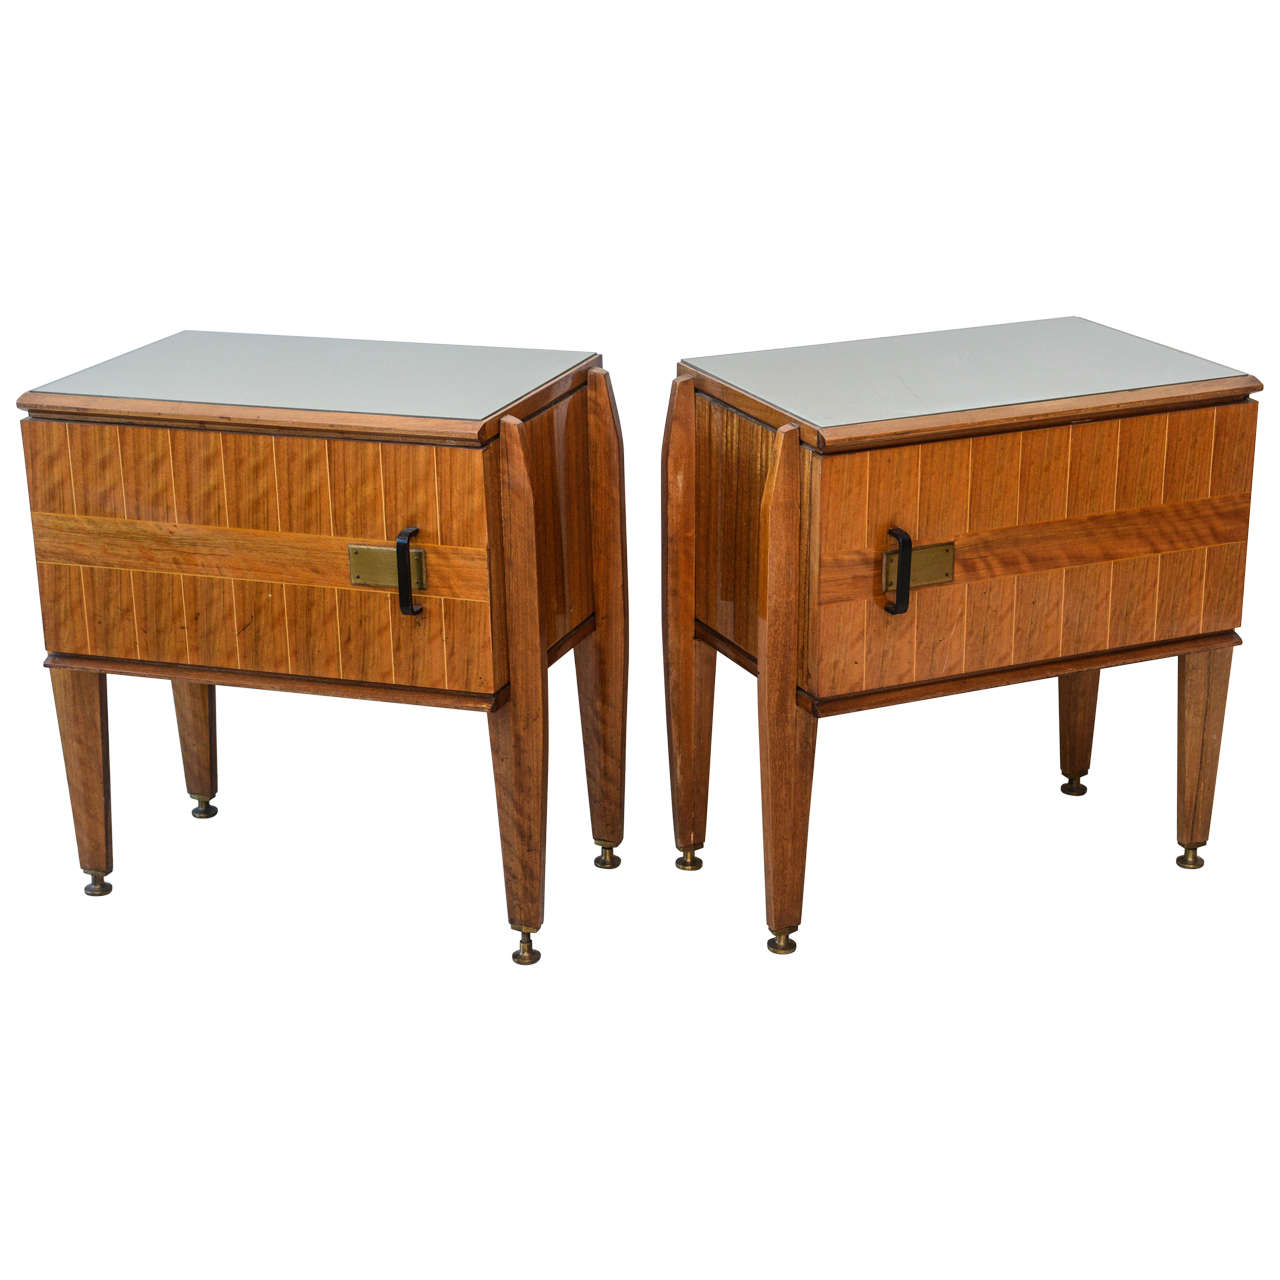 Pair of Italian Modern Inlaid Mixed Wood and Bronze Night Tables, Dassi For Sale